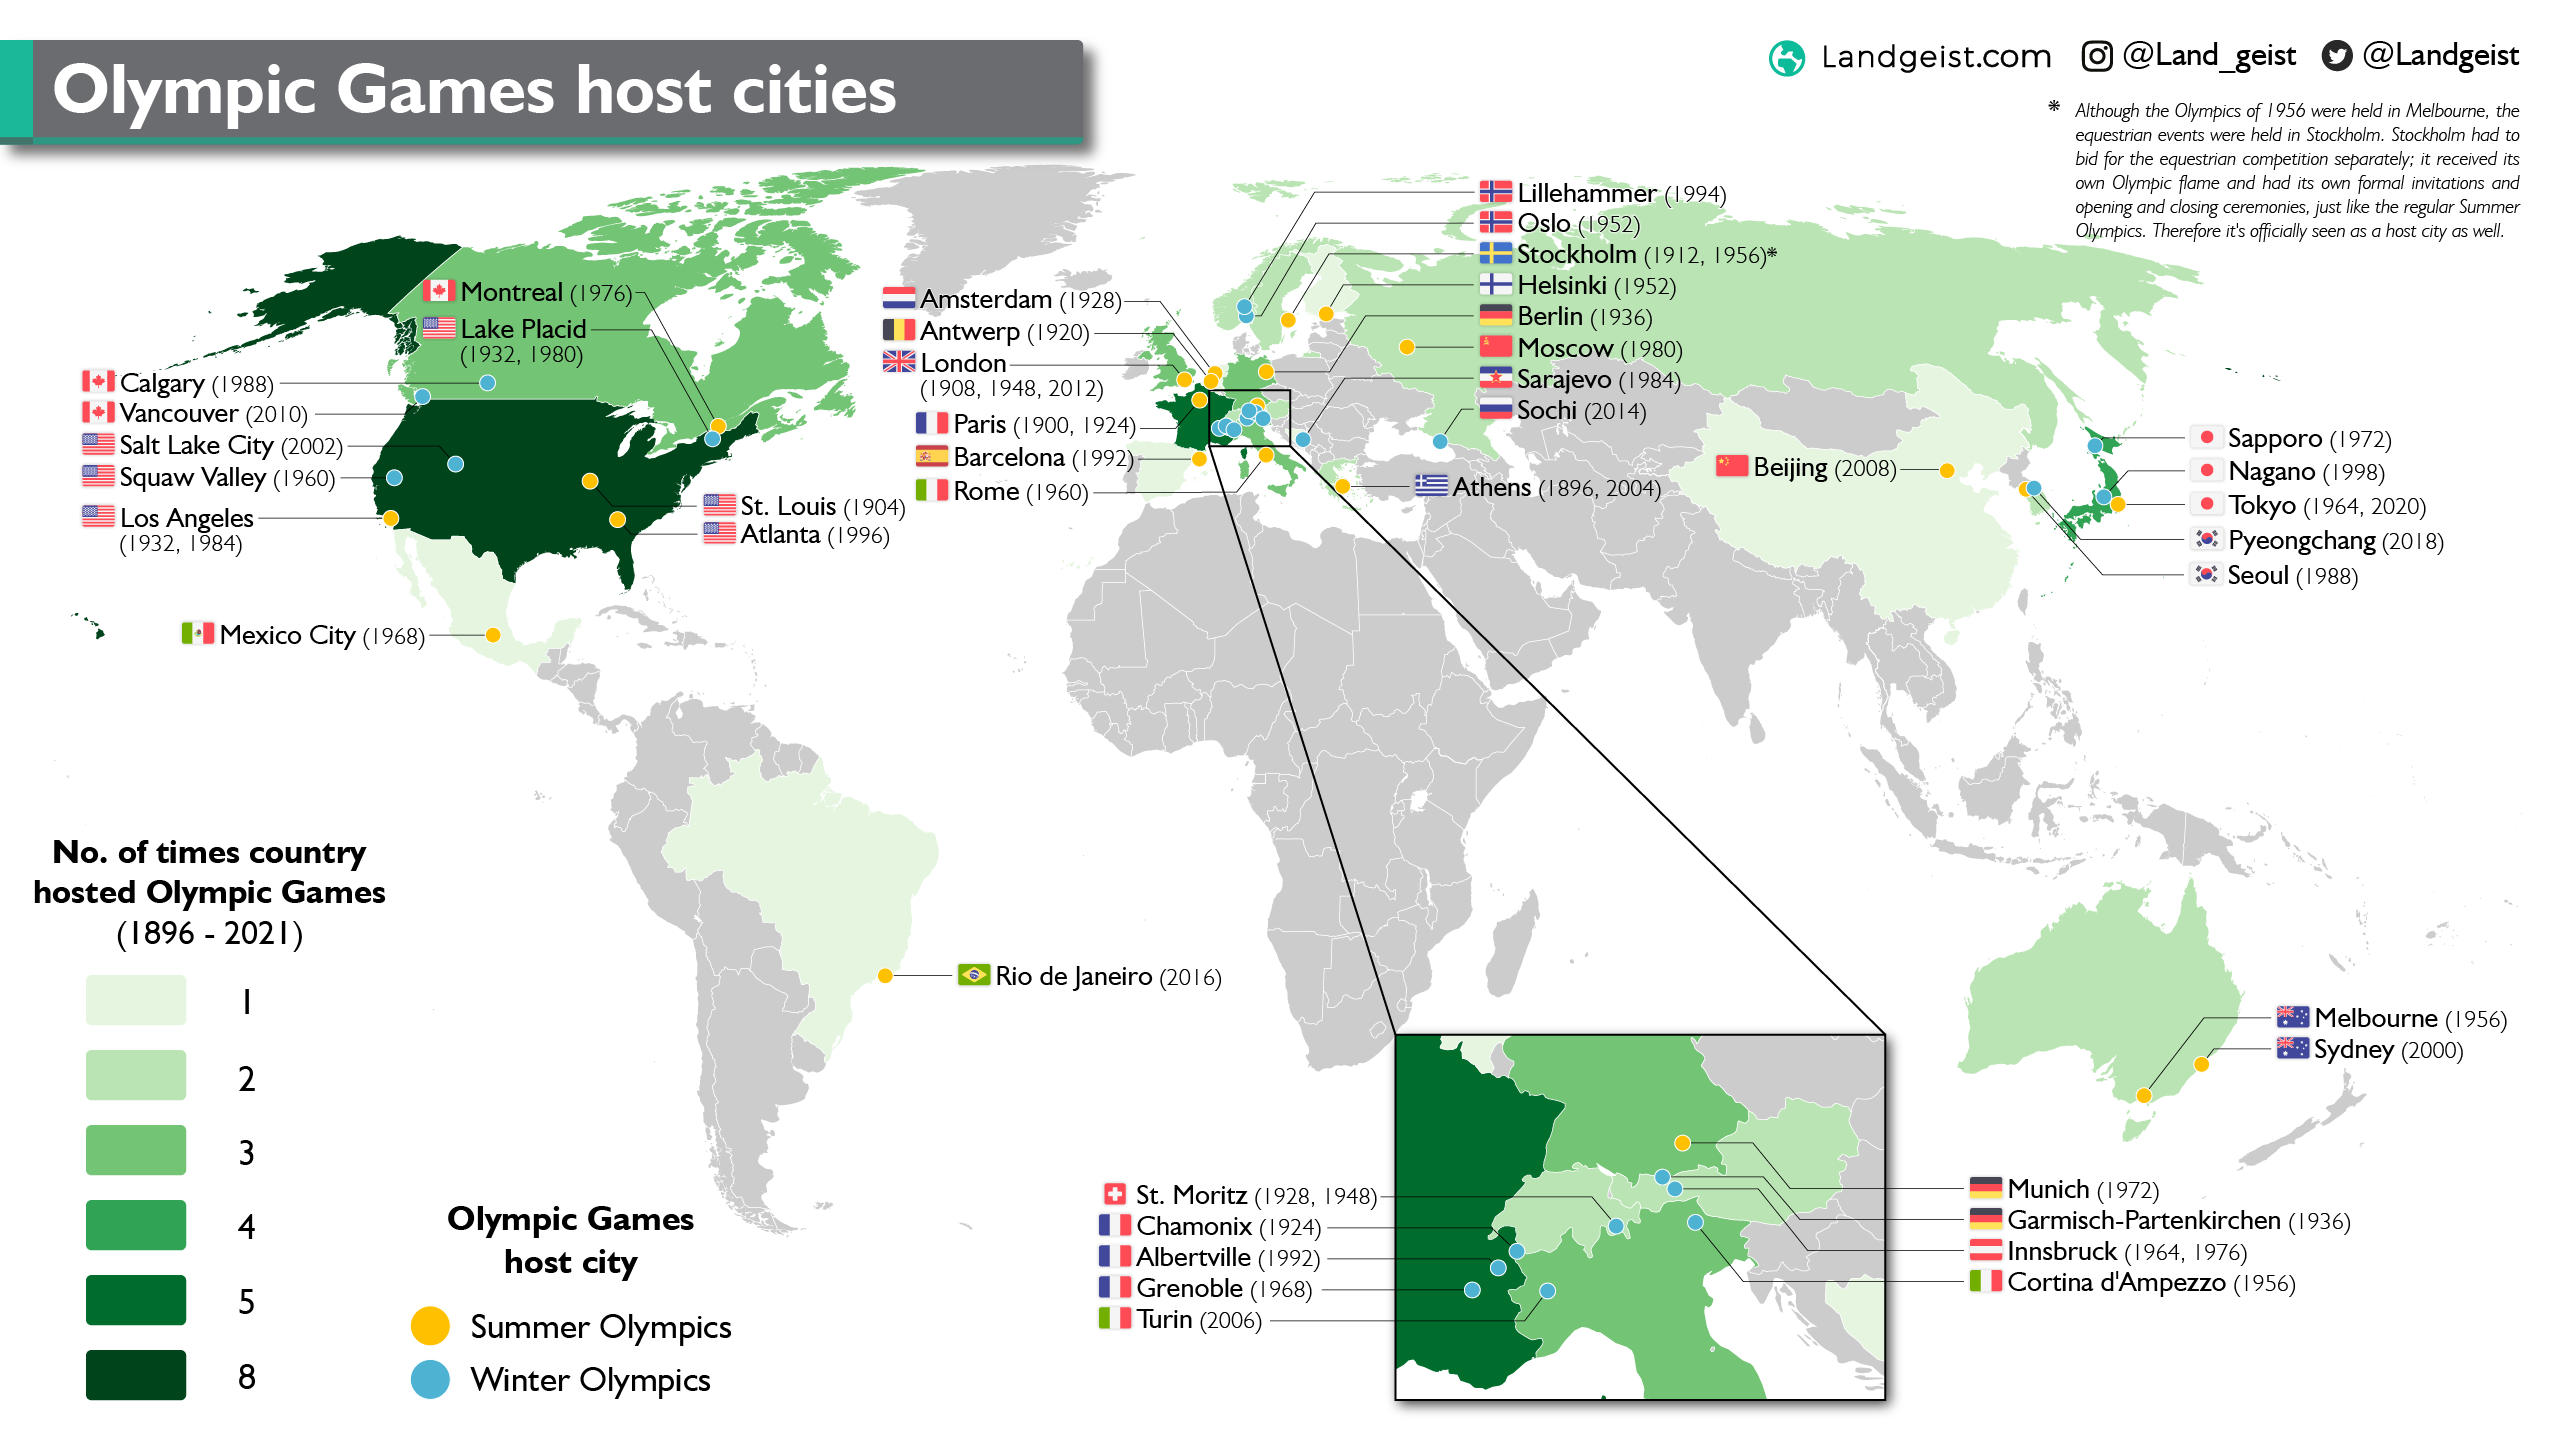 World map of the host cities for the Olympic Games.